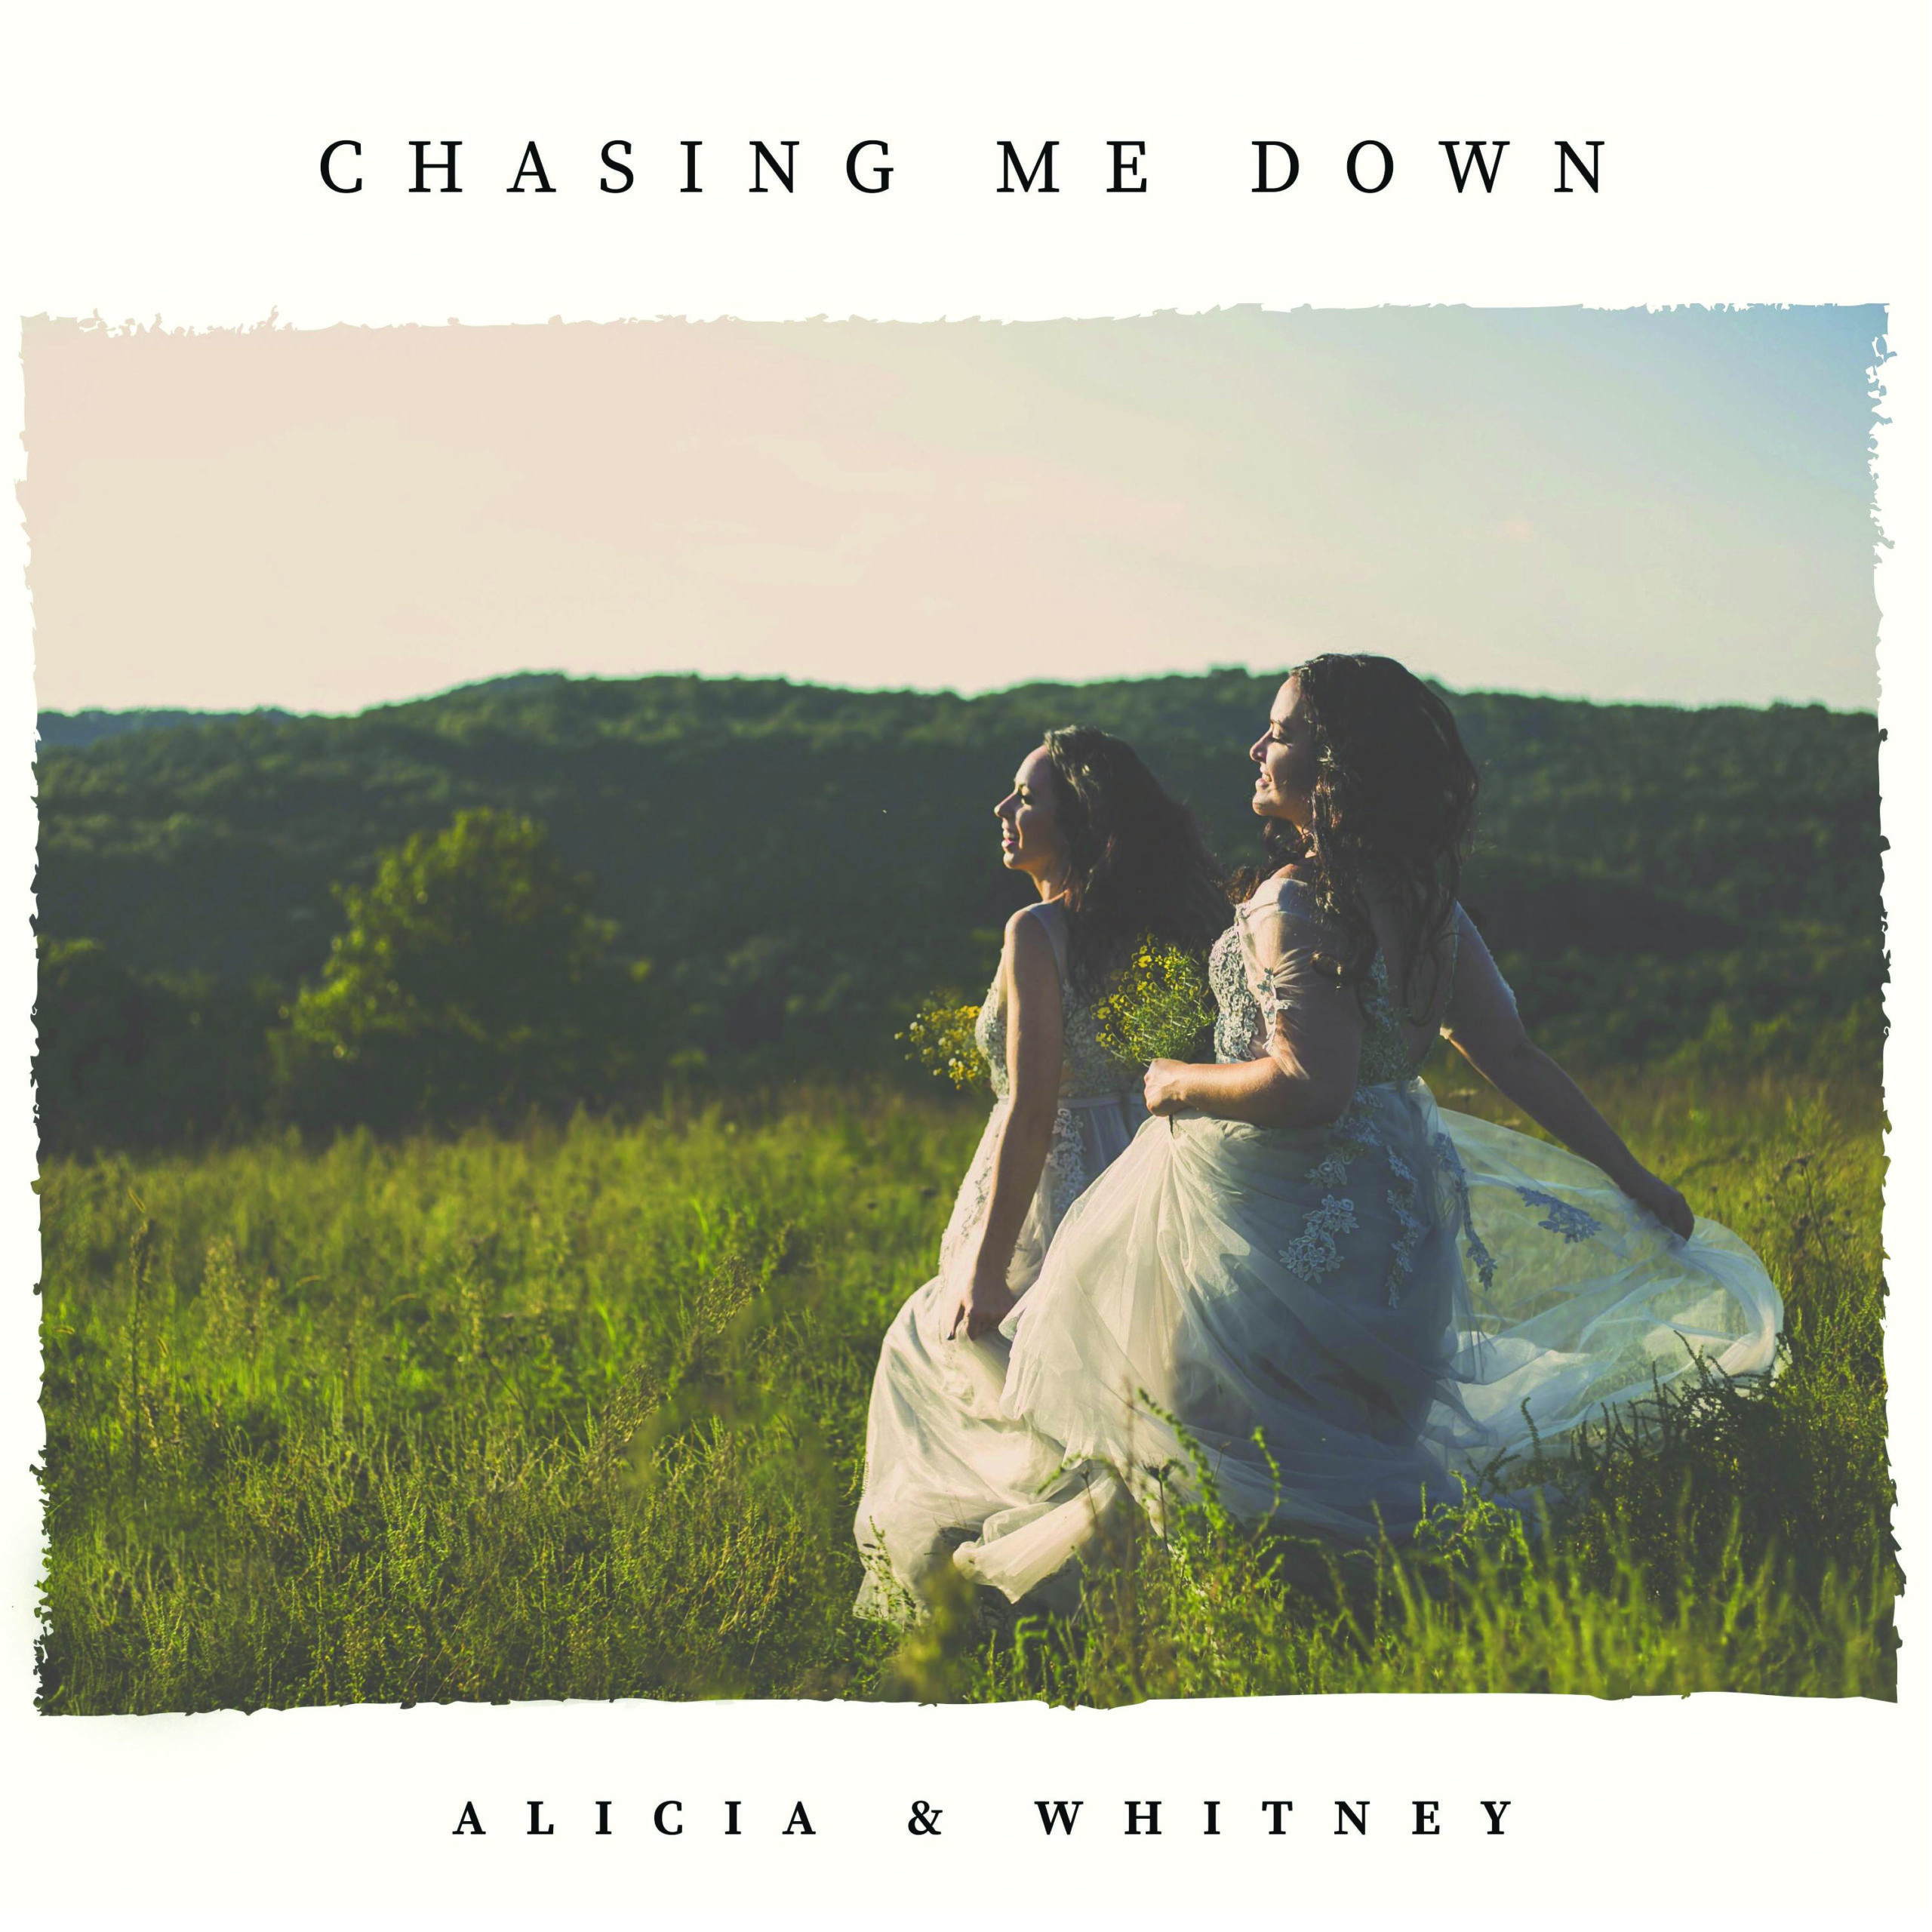 NEW SINGLE OUT TODAY FROM ALICIA & WHITNEY